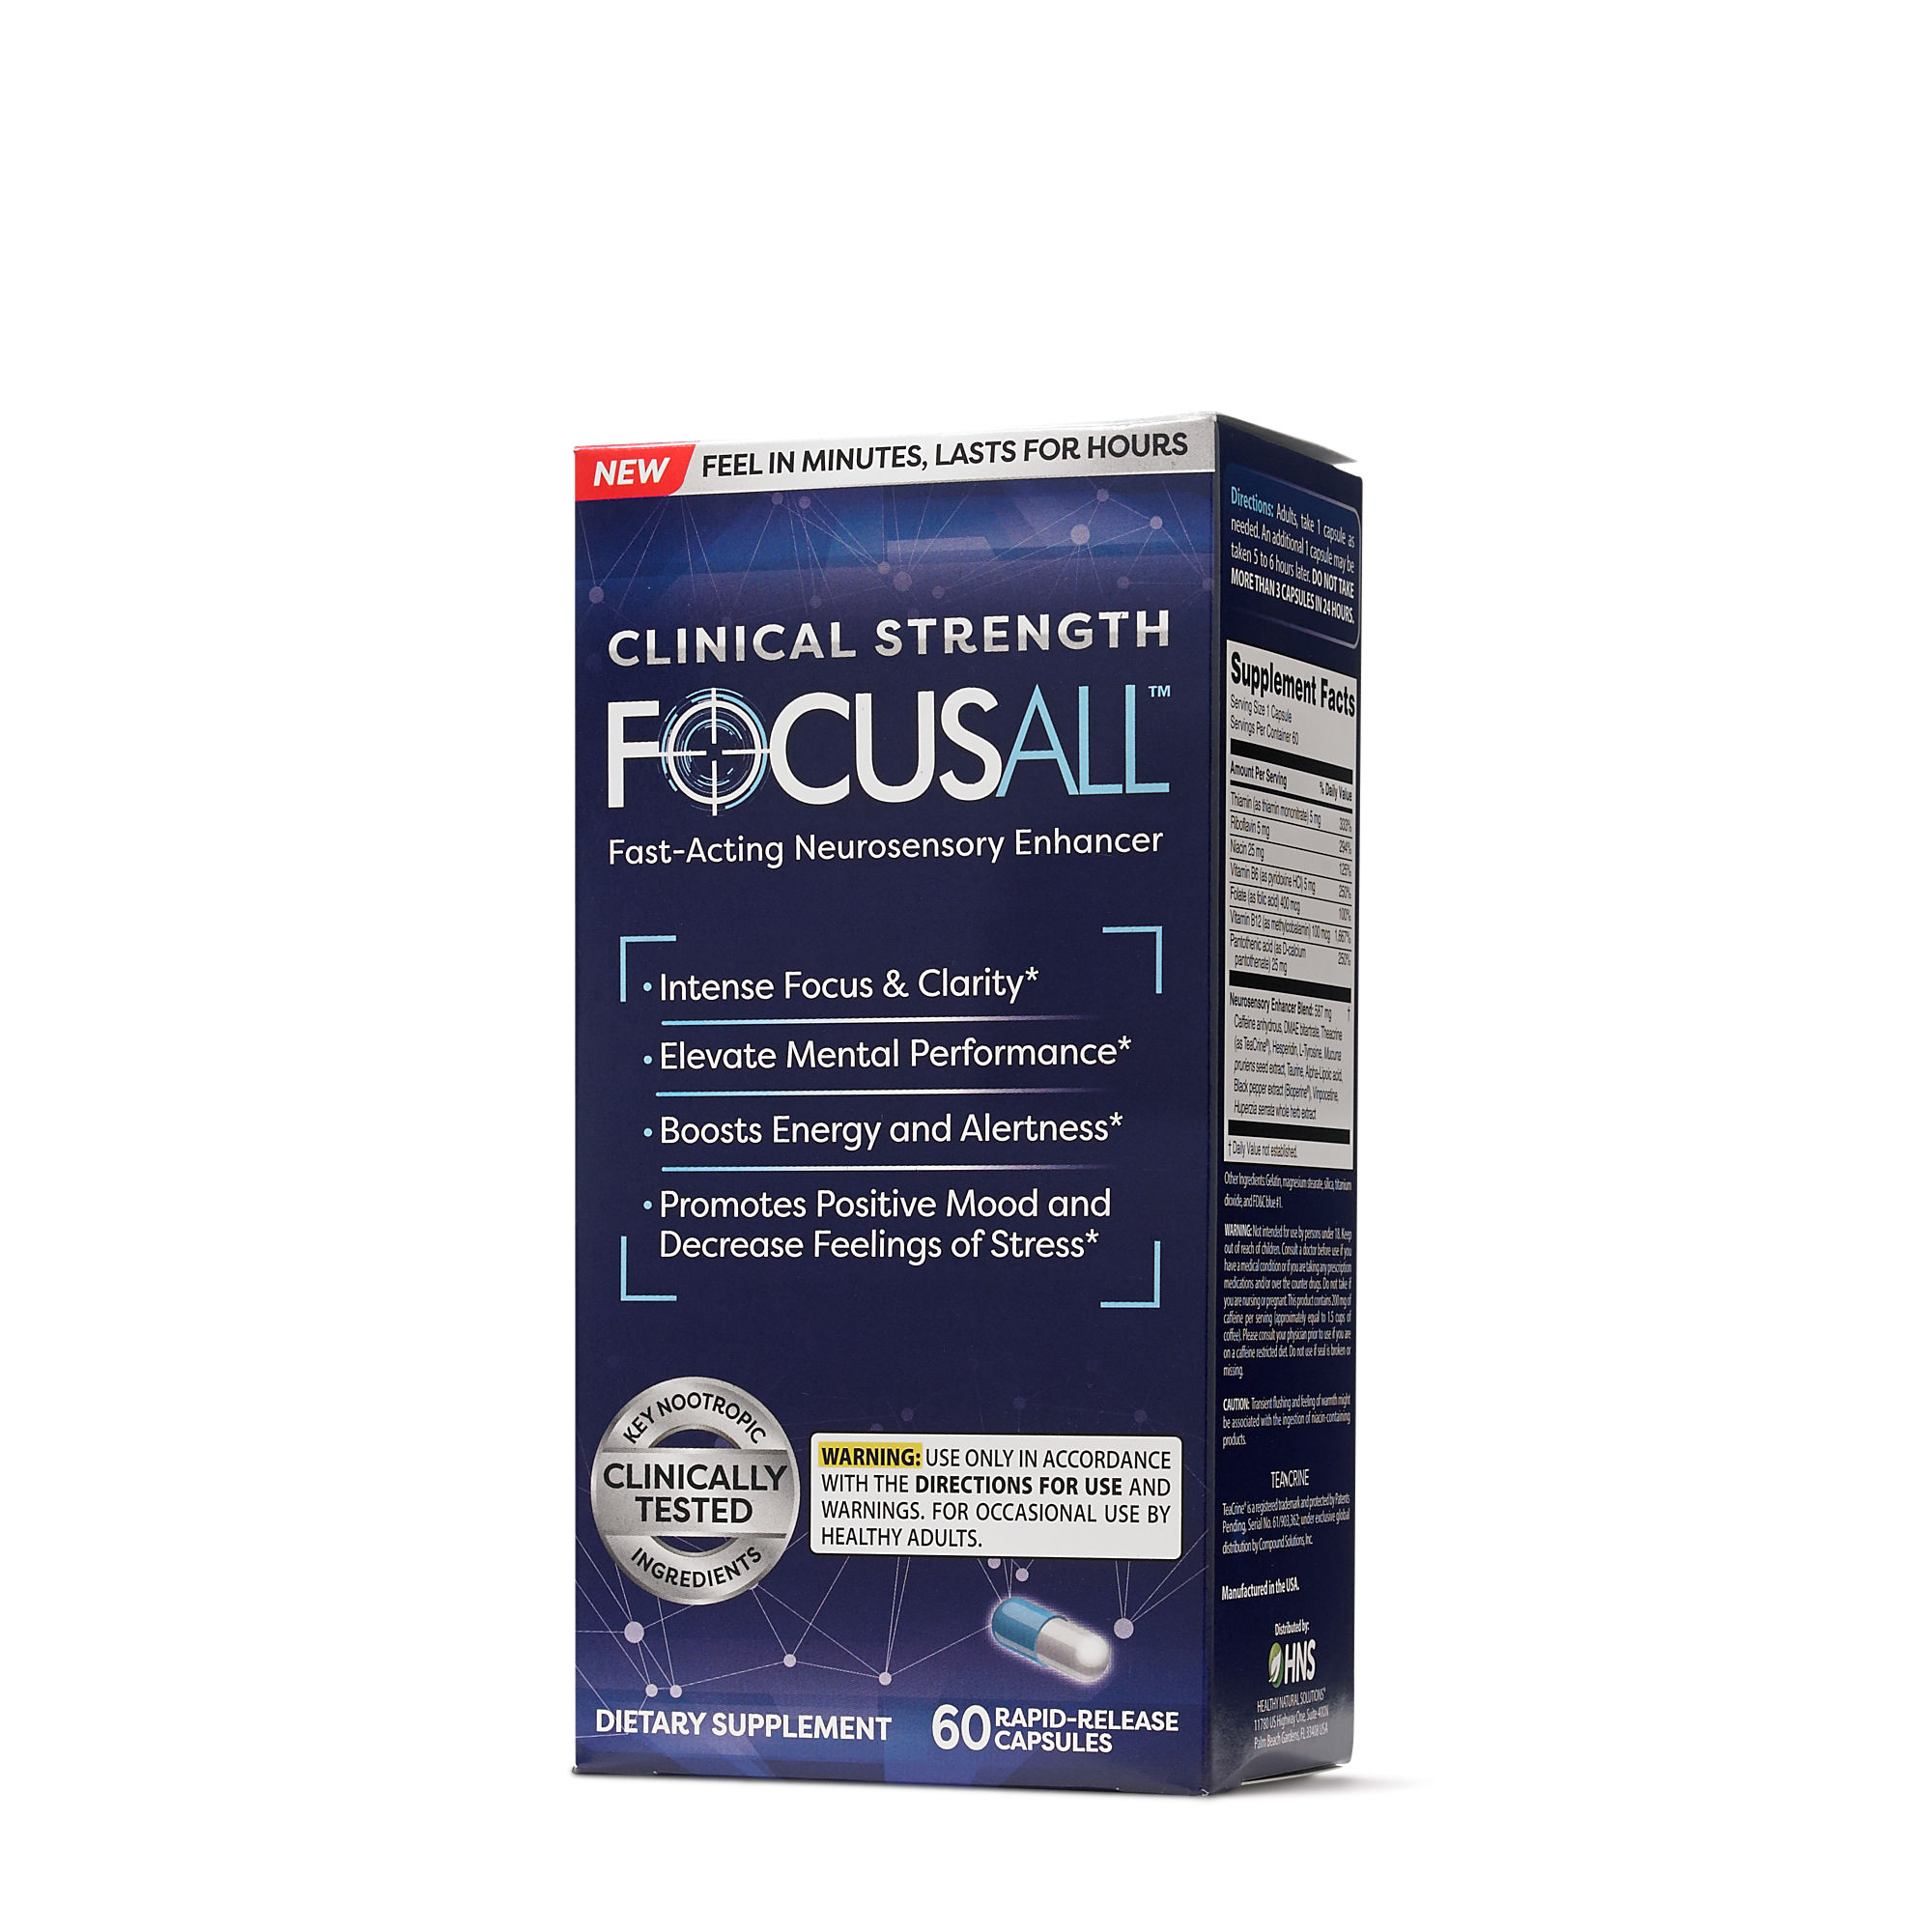 Focusall Review